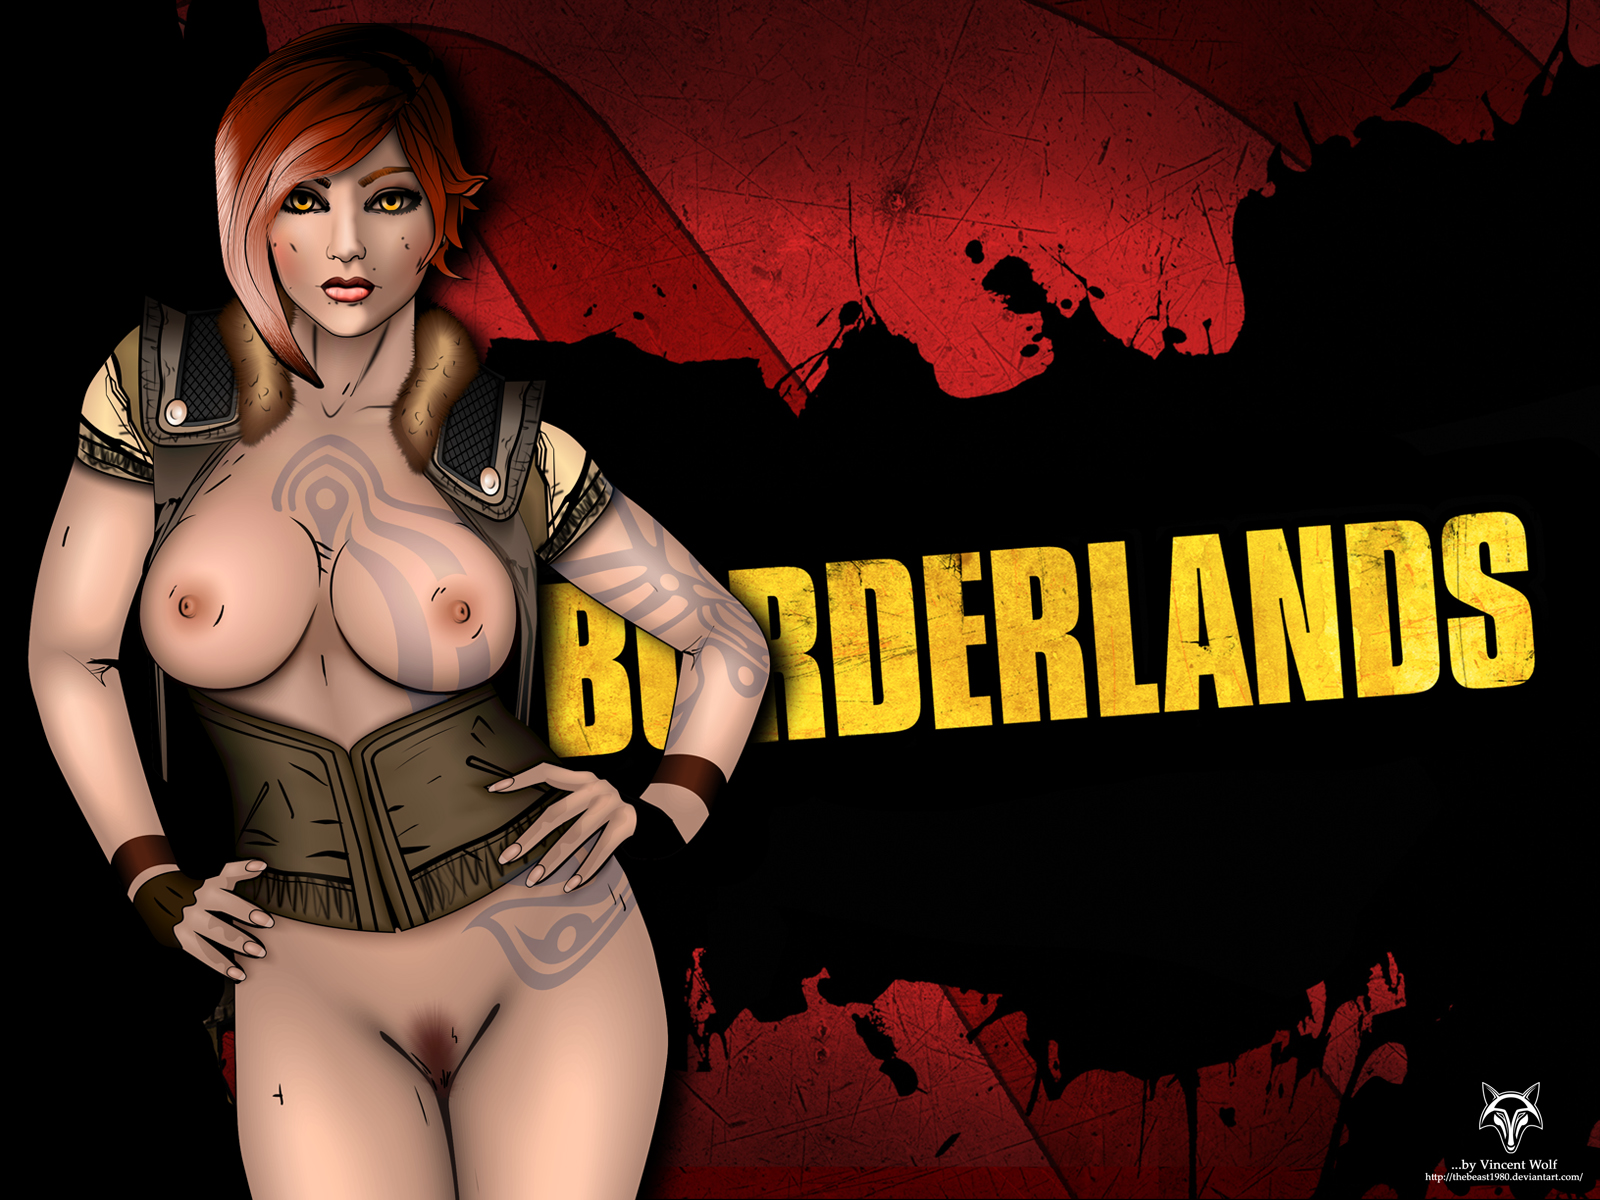 Lilith naked in borderlands 2 softcore images